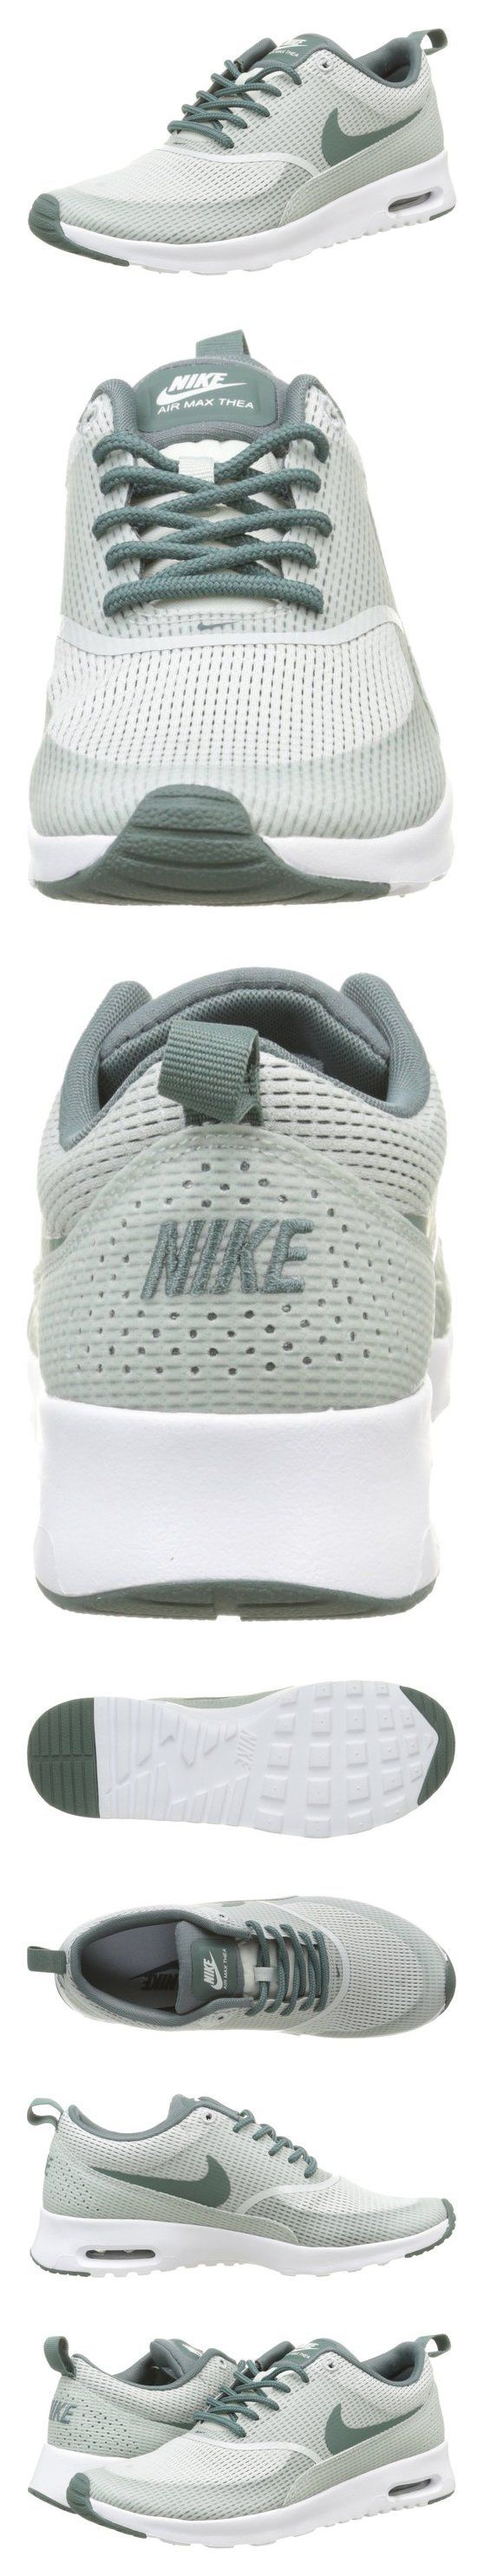 $95 - Nike Women's Air Max Thea TxT Light Silver/Hasta/White Running Shoe